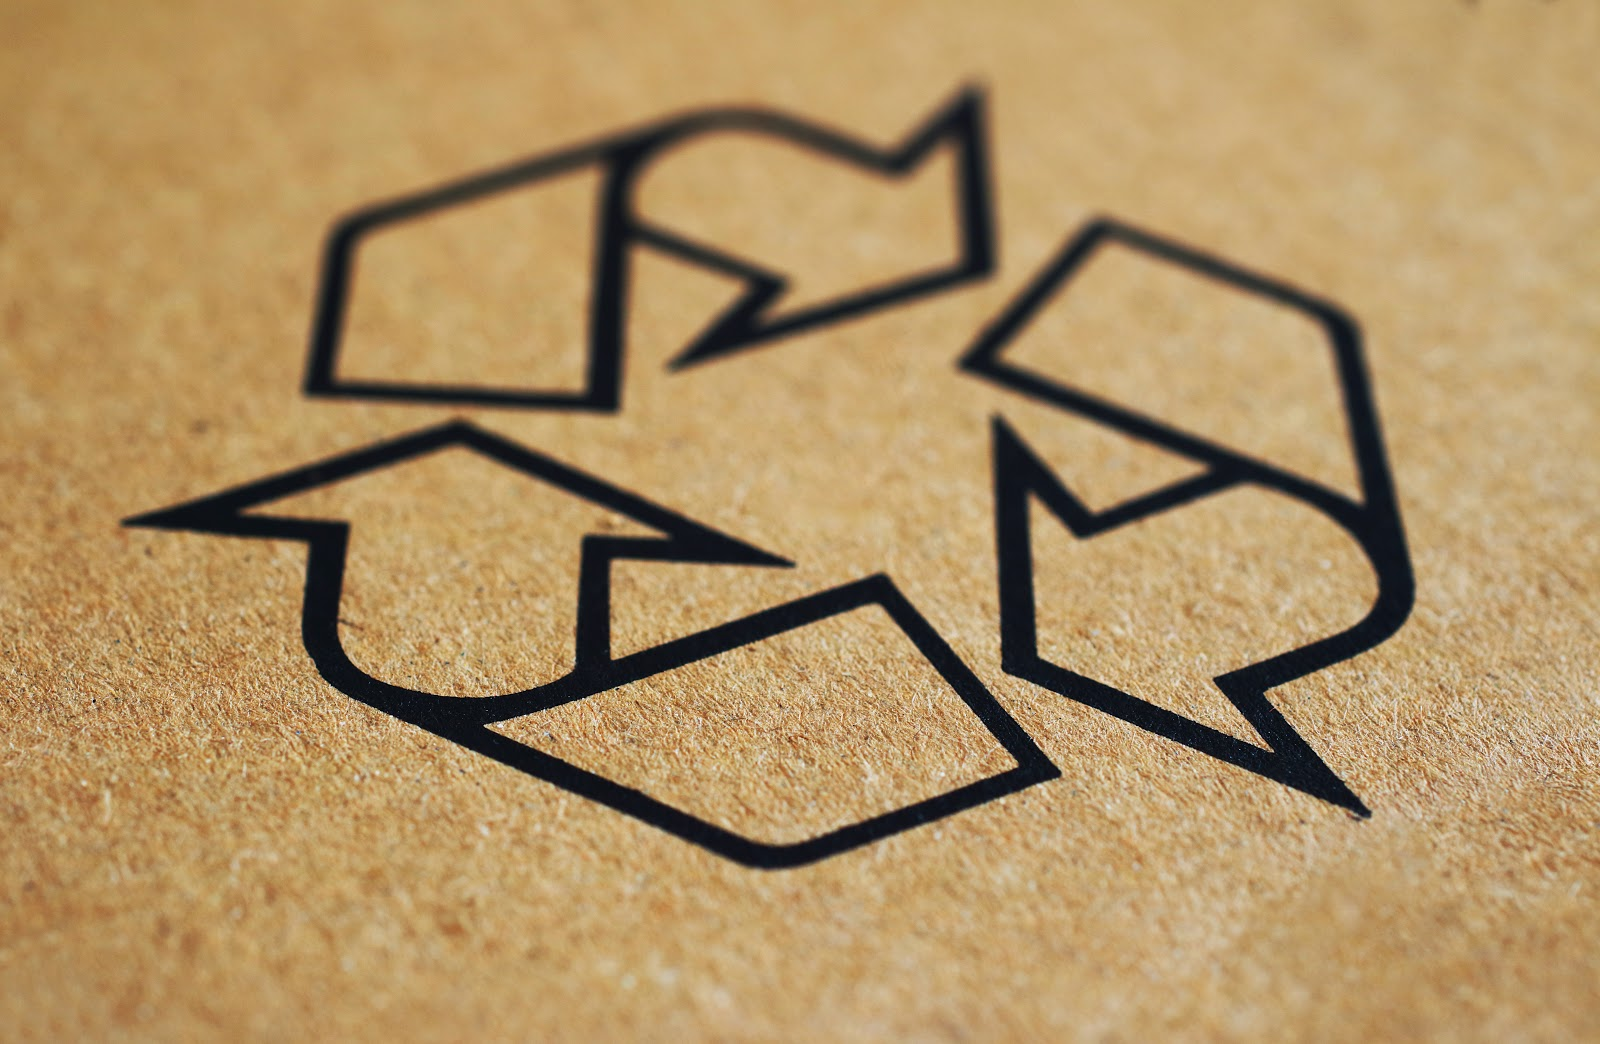 recycling logo on paper packaging.jpg